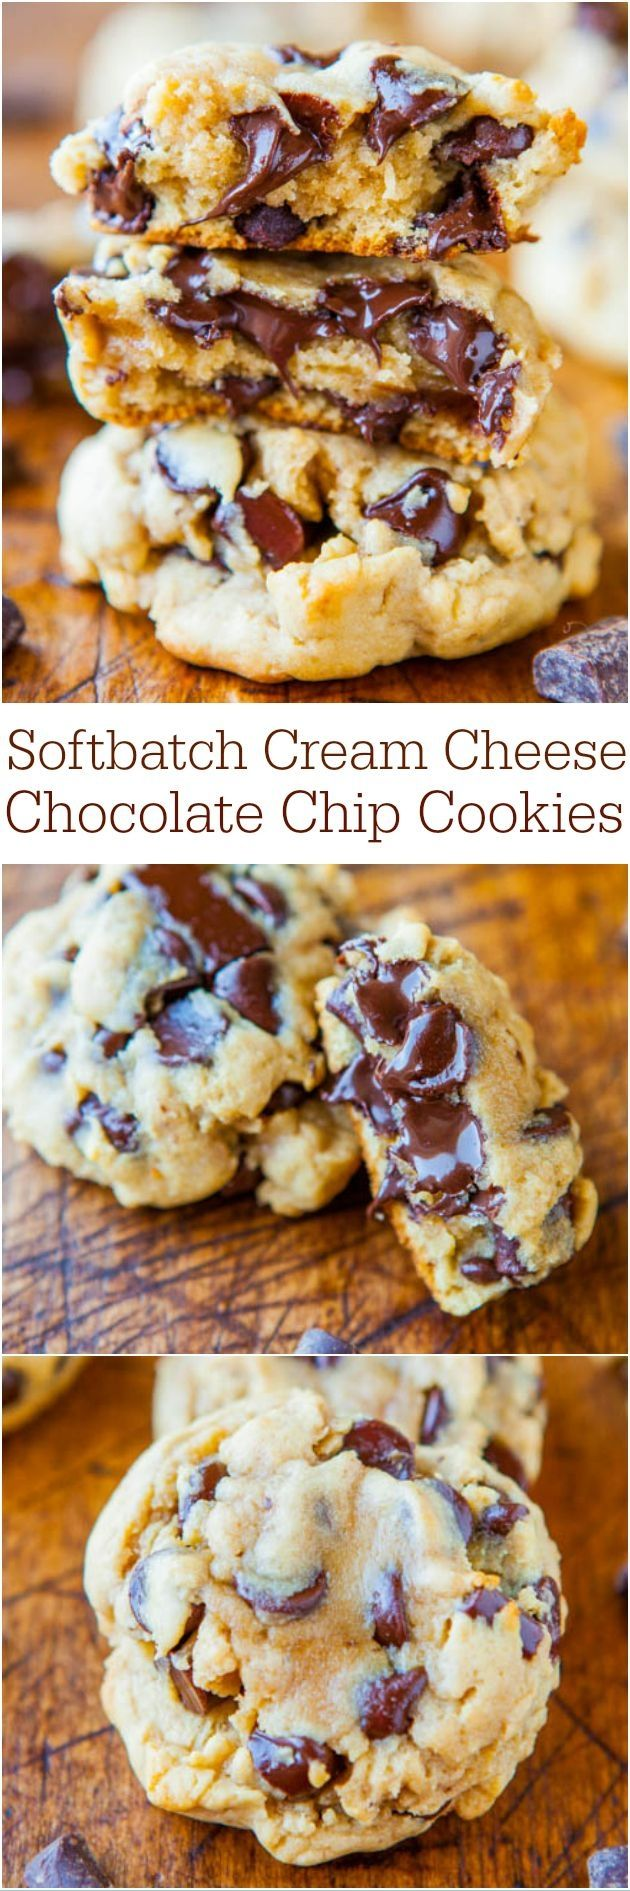 Softbatch Cream Cheese Chocolate Chip Cookies (use low carb/gluten free flour; use sugar subs for low carb)